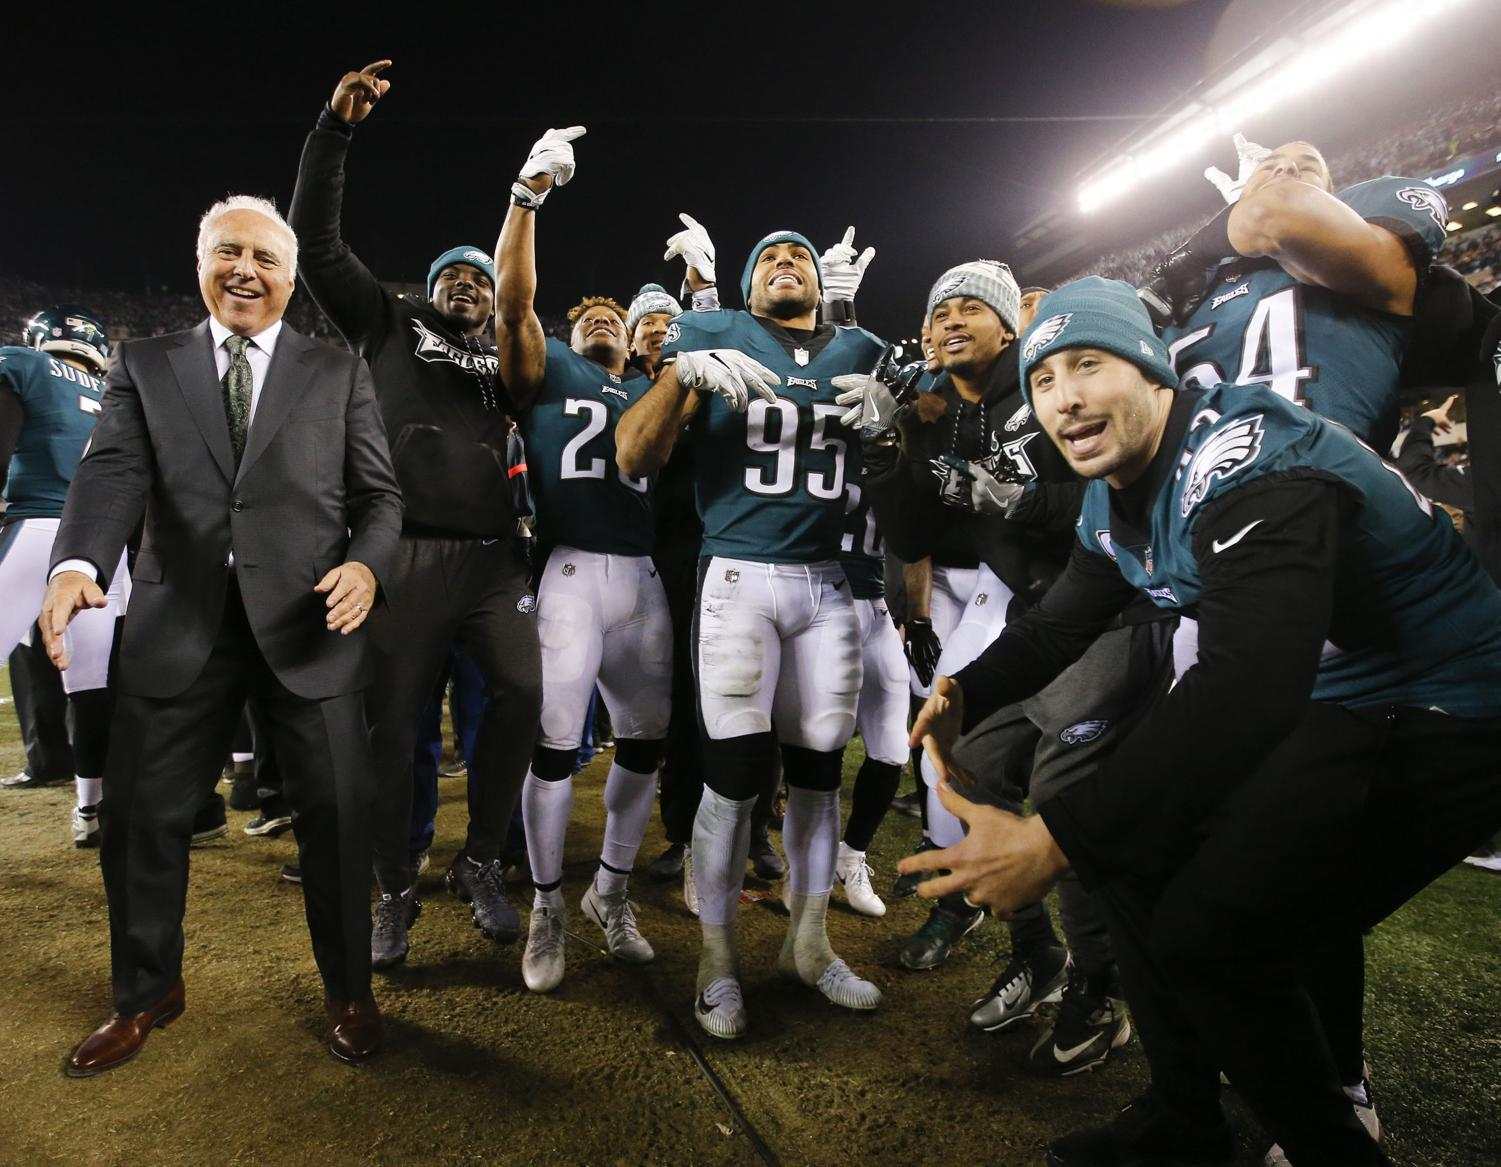 Jeffery Lurie, owner of the Philadelphia Eagles, celebrates with his team after beating the Minnesota Vikings in the NFC Championship.